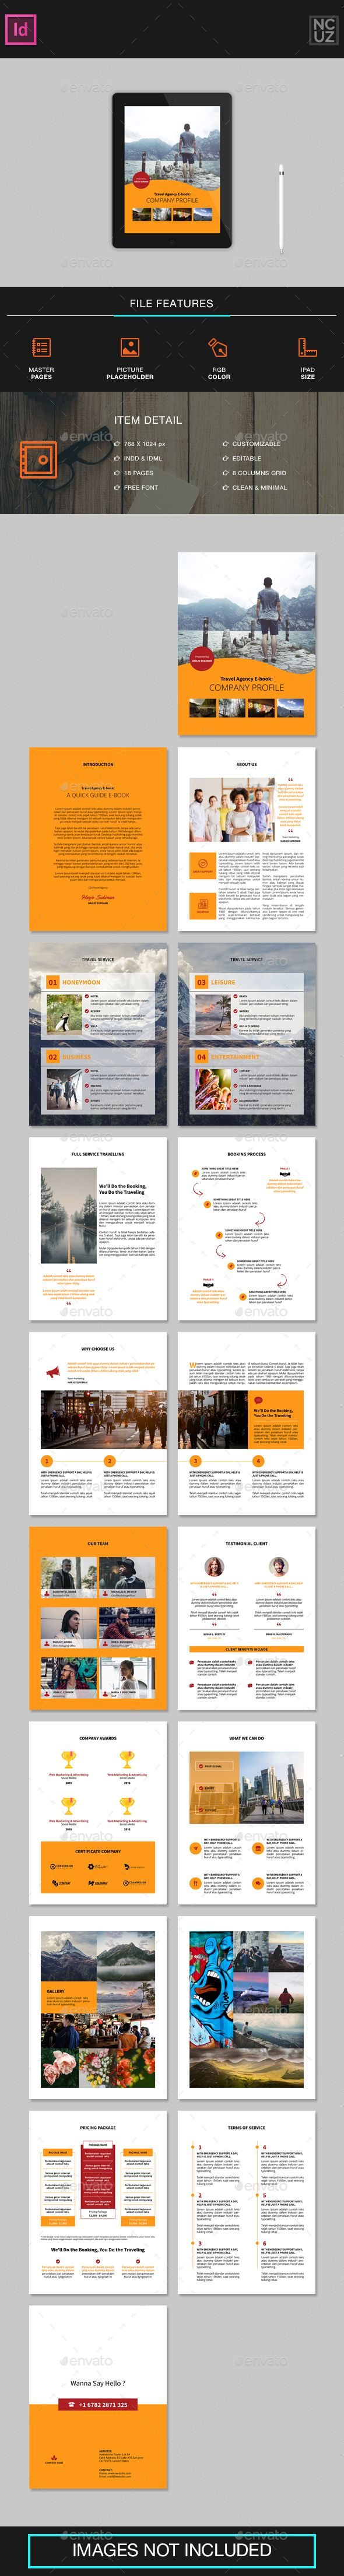 Amazing 1 2 3 Nu Kapitel Resume Tall 10 Minute Resume Round 10 Steps To Creating A Resume 16 Year Old Resumes Young 2 Round Label Template Blue2014 Calendar Excel Template 471 Best Images About E Publishing Templates On Pinterest | E ..